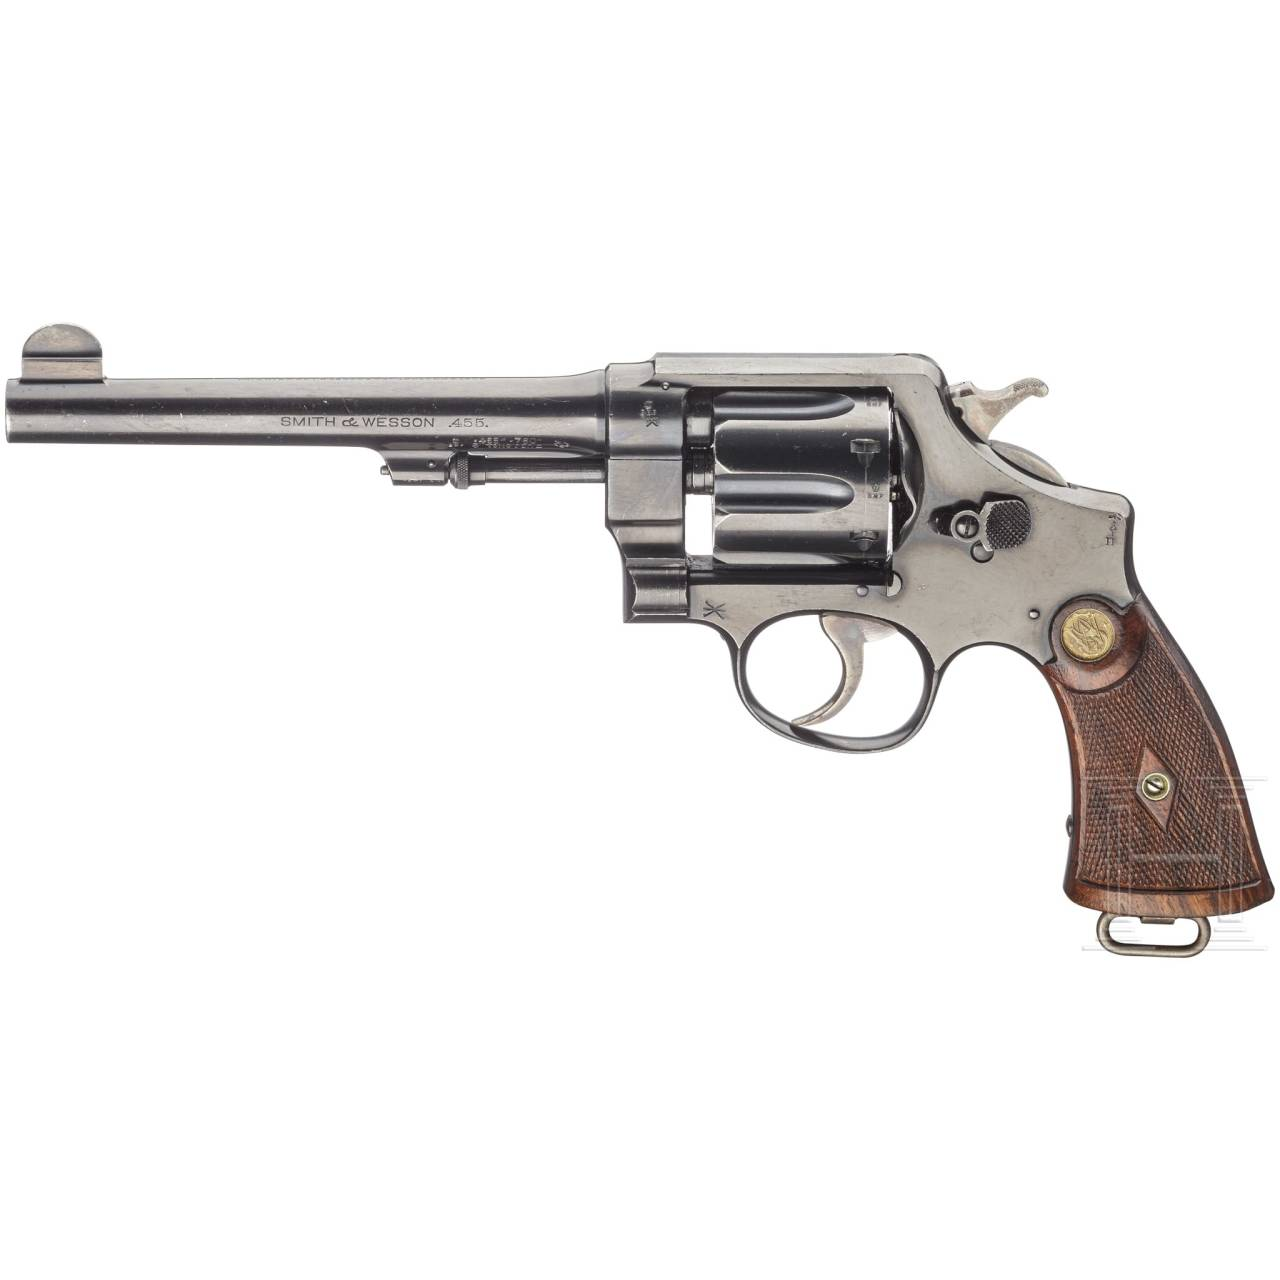 A Smith & Wesson .455 Mark II Hand Ejector, 2nd Model